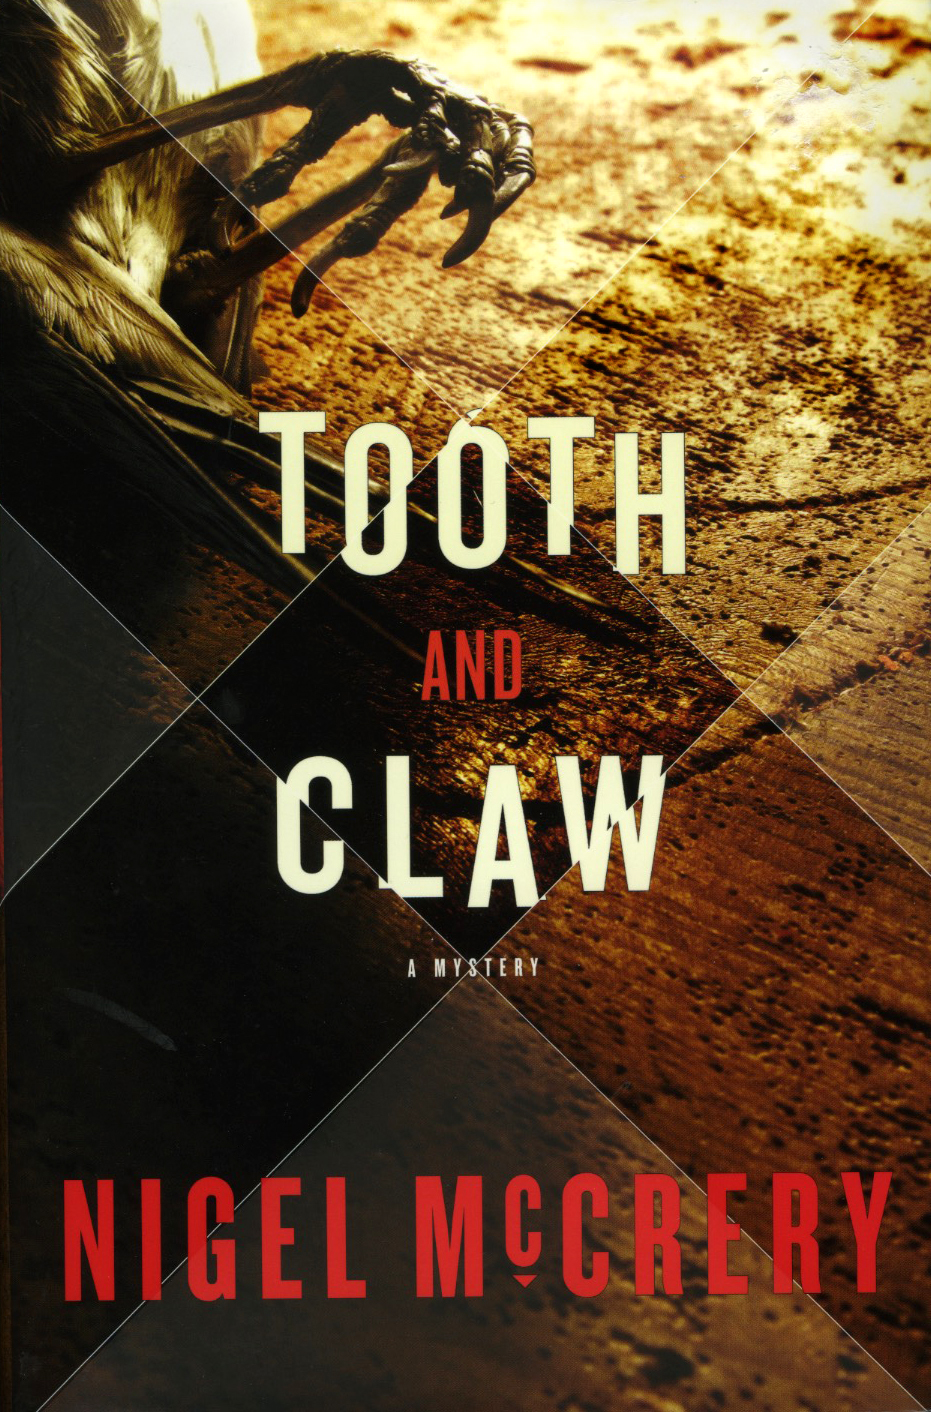 Tooth and Claw, by Nigel McCreryPhotograph by Jessica Hines, cover design by Brian Barth, Random House Books